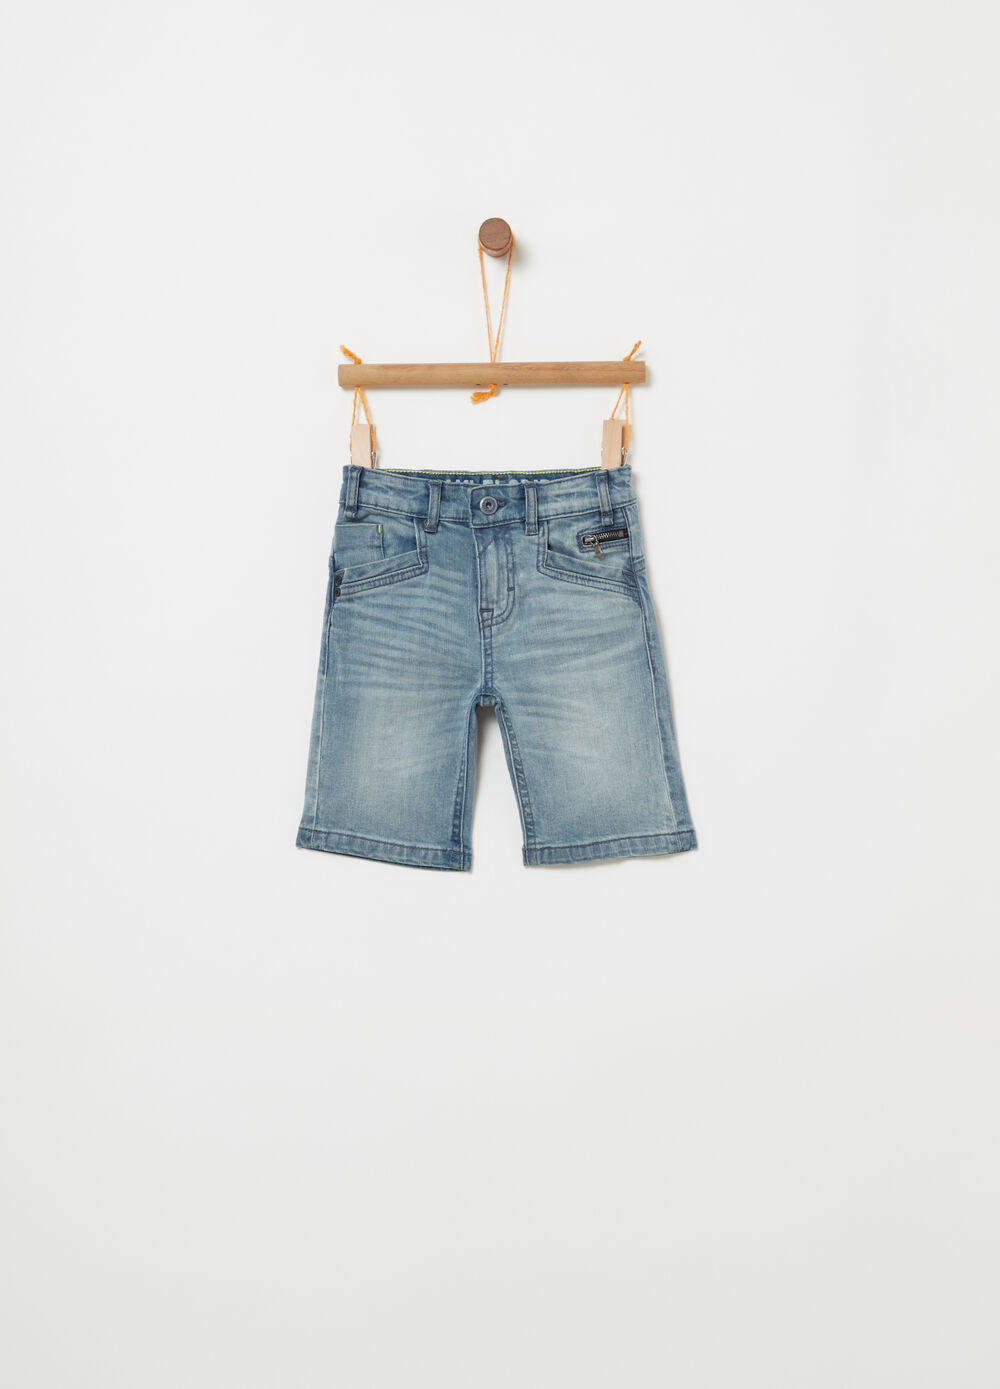 Stretch denim Bermuda shorts with functional pockets